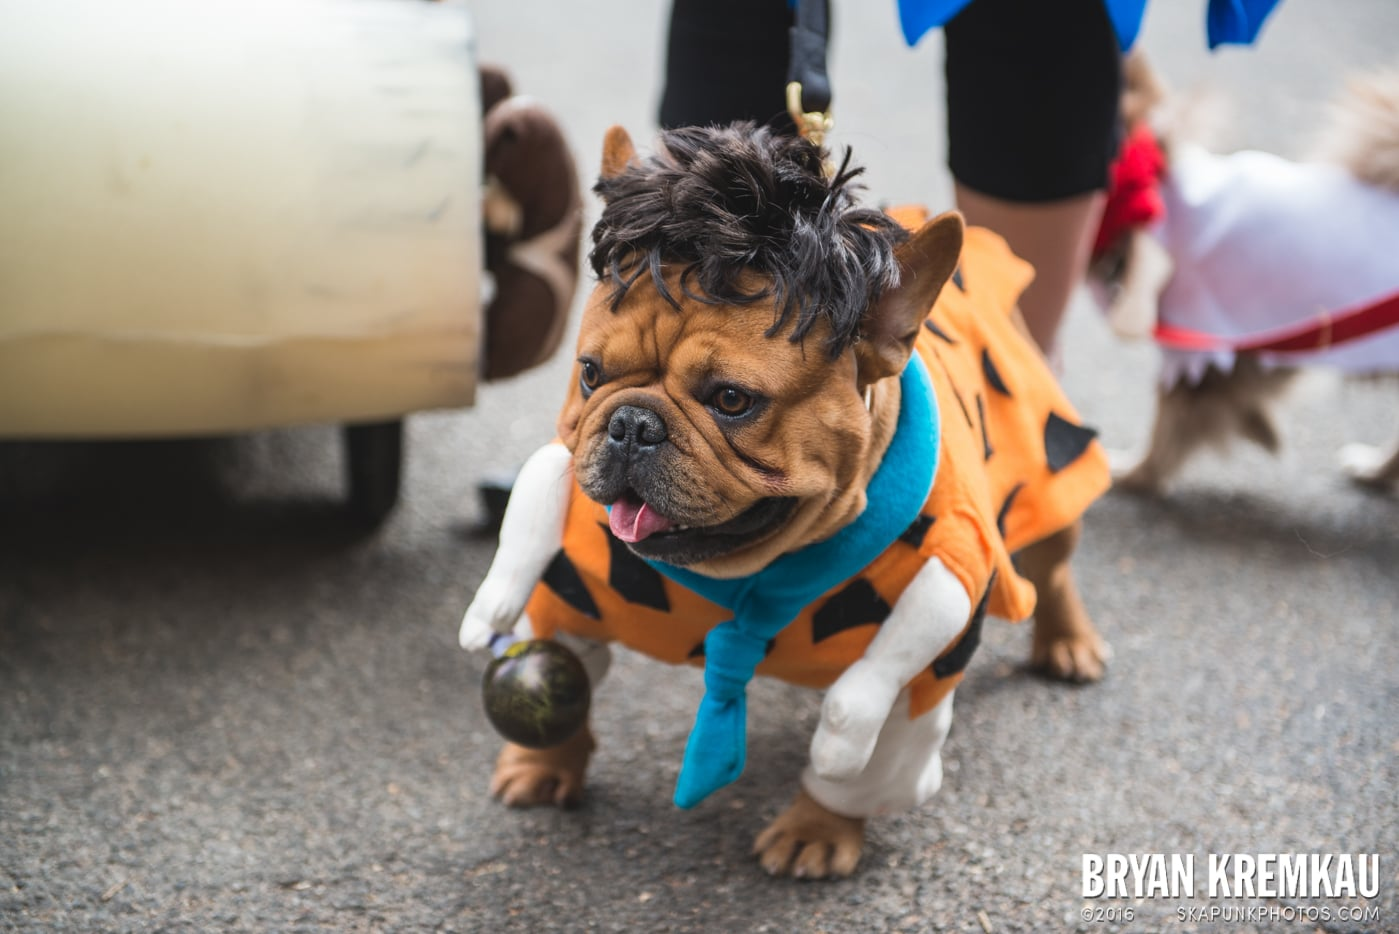 Tompkins Square Halloween Dog Parade 2015 @ Tompkins Square Park, NYC – 10.24.15 (23)